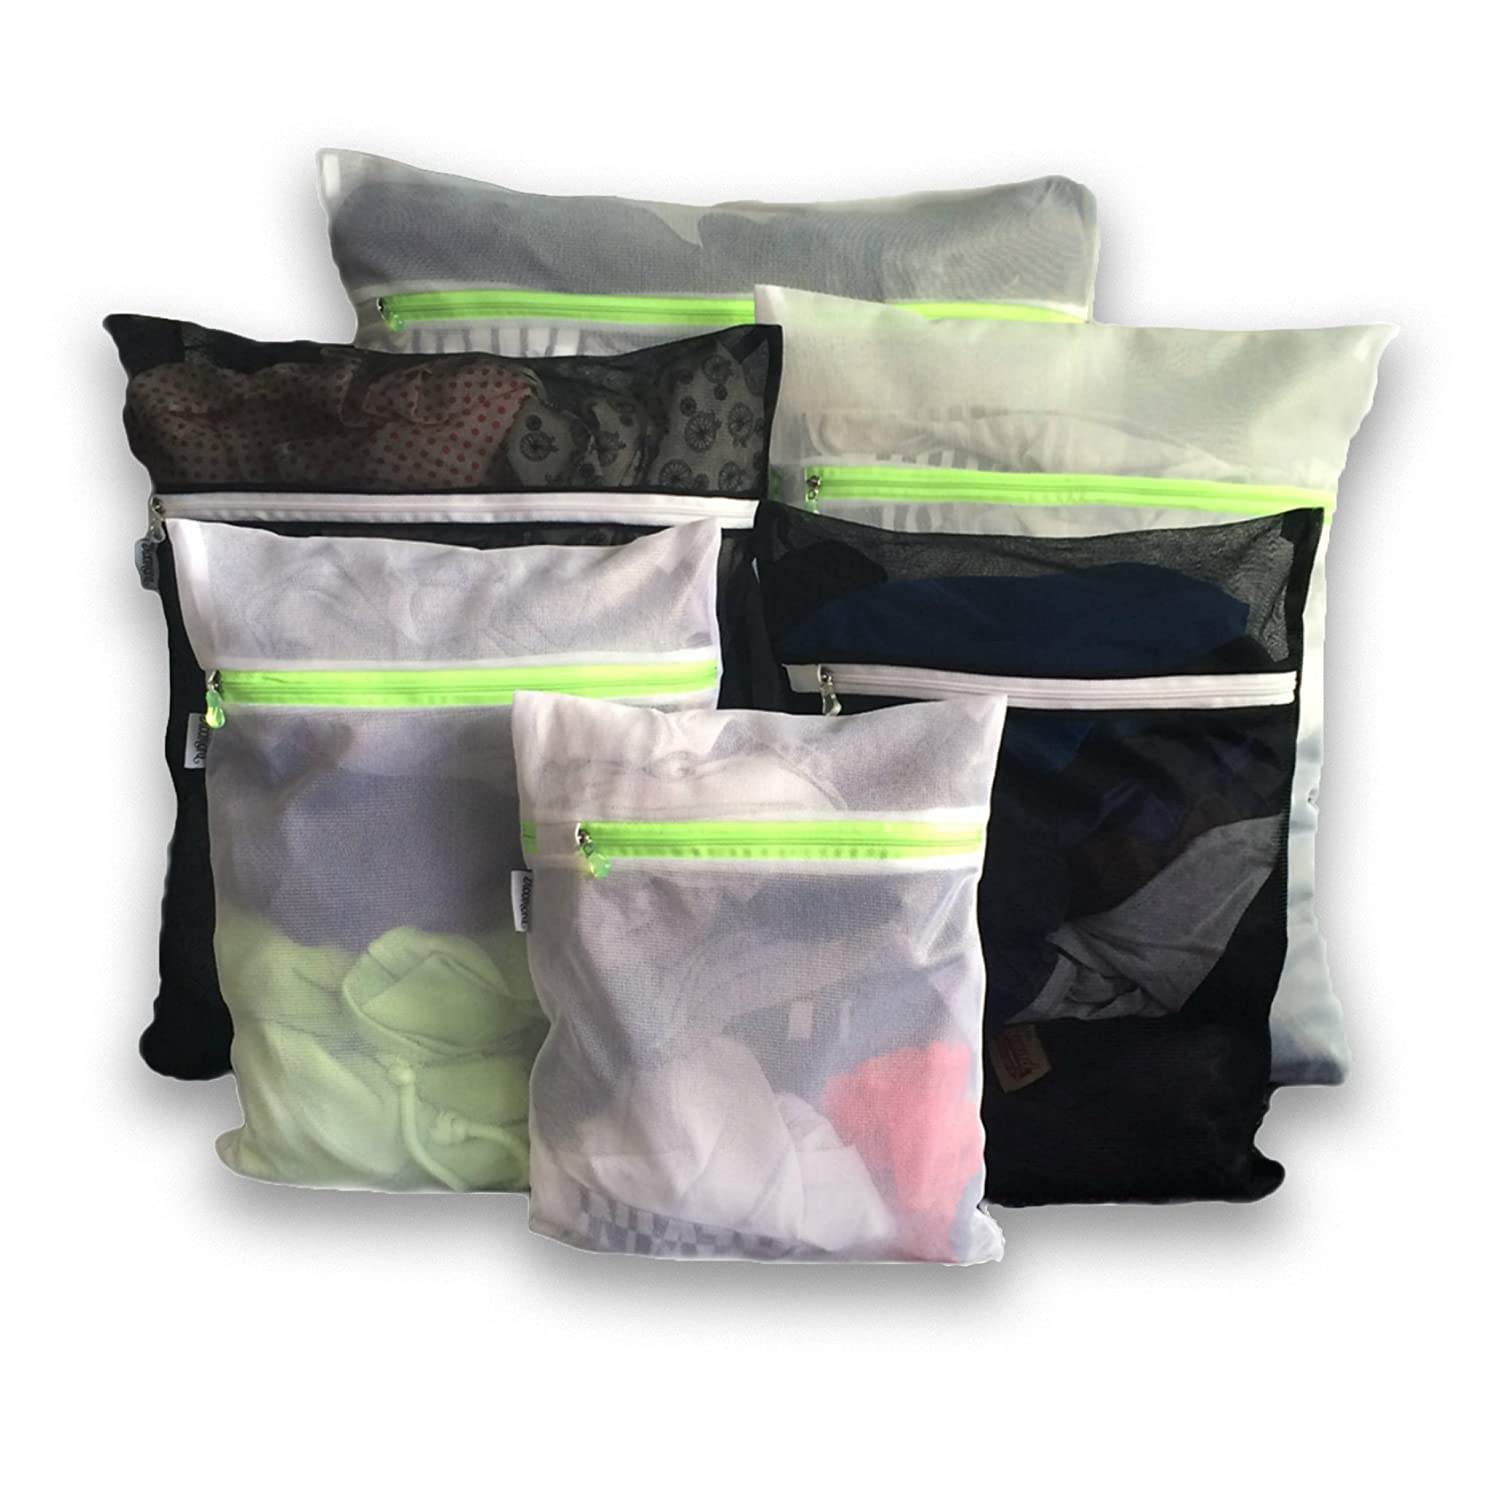 6 Mesh Laundry Wash Bags-1 XL, 2 Large, 2 Medium & 1 Small for Delicates, Bra, Underwear, Lingerie, Socks, Blouse, Hosiery, Stockings - Travel Laundry Bag Black & White AX-AY-ABHI-93858